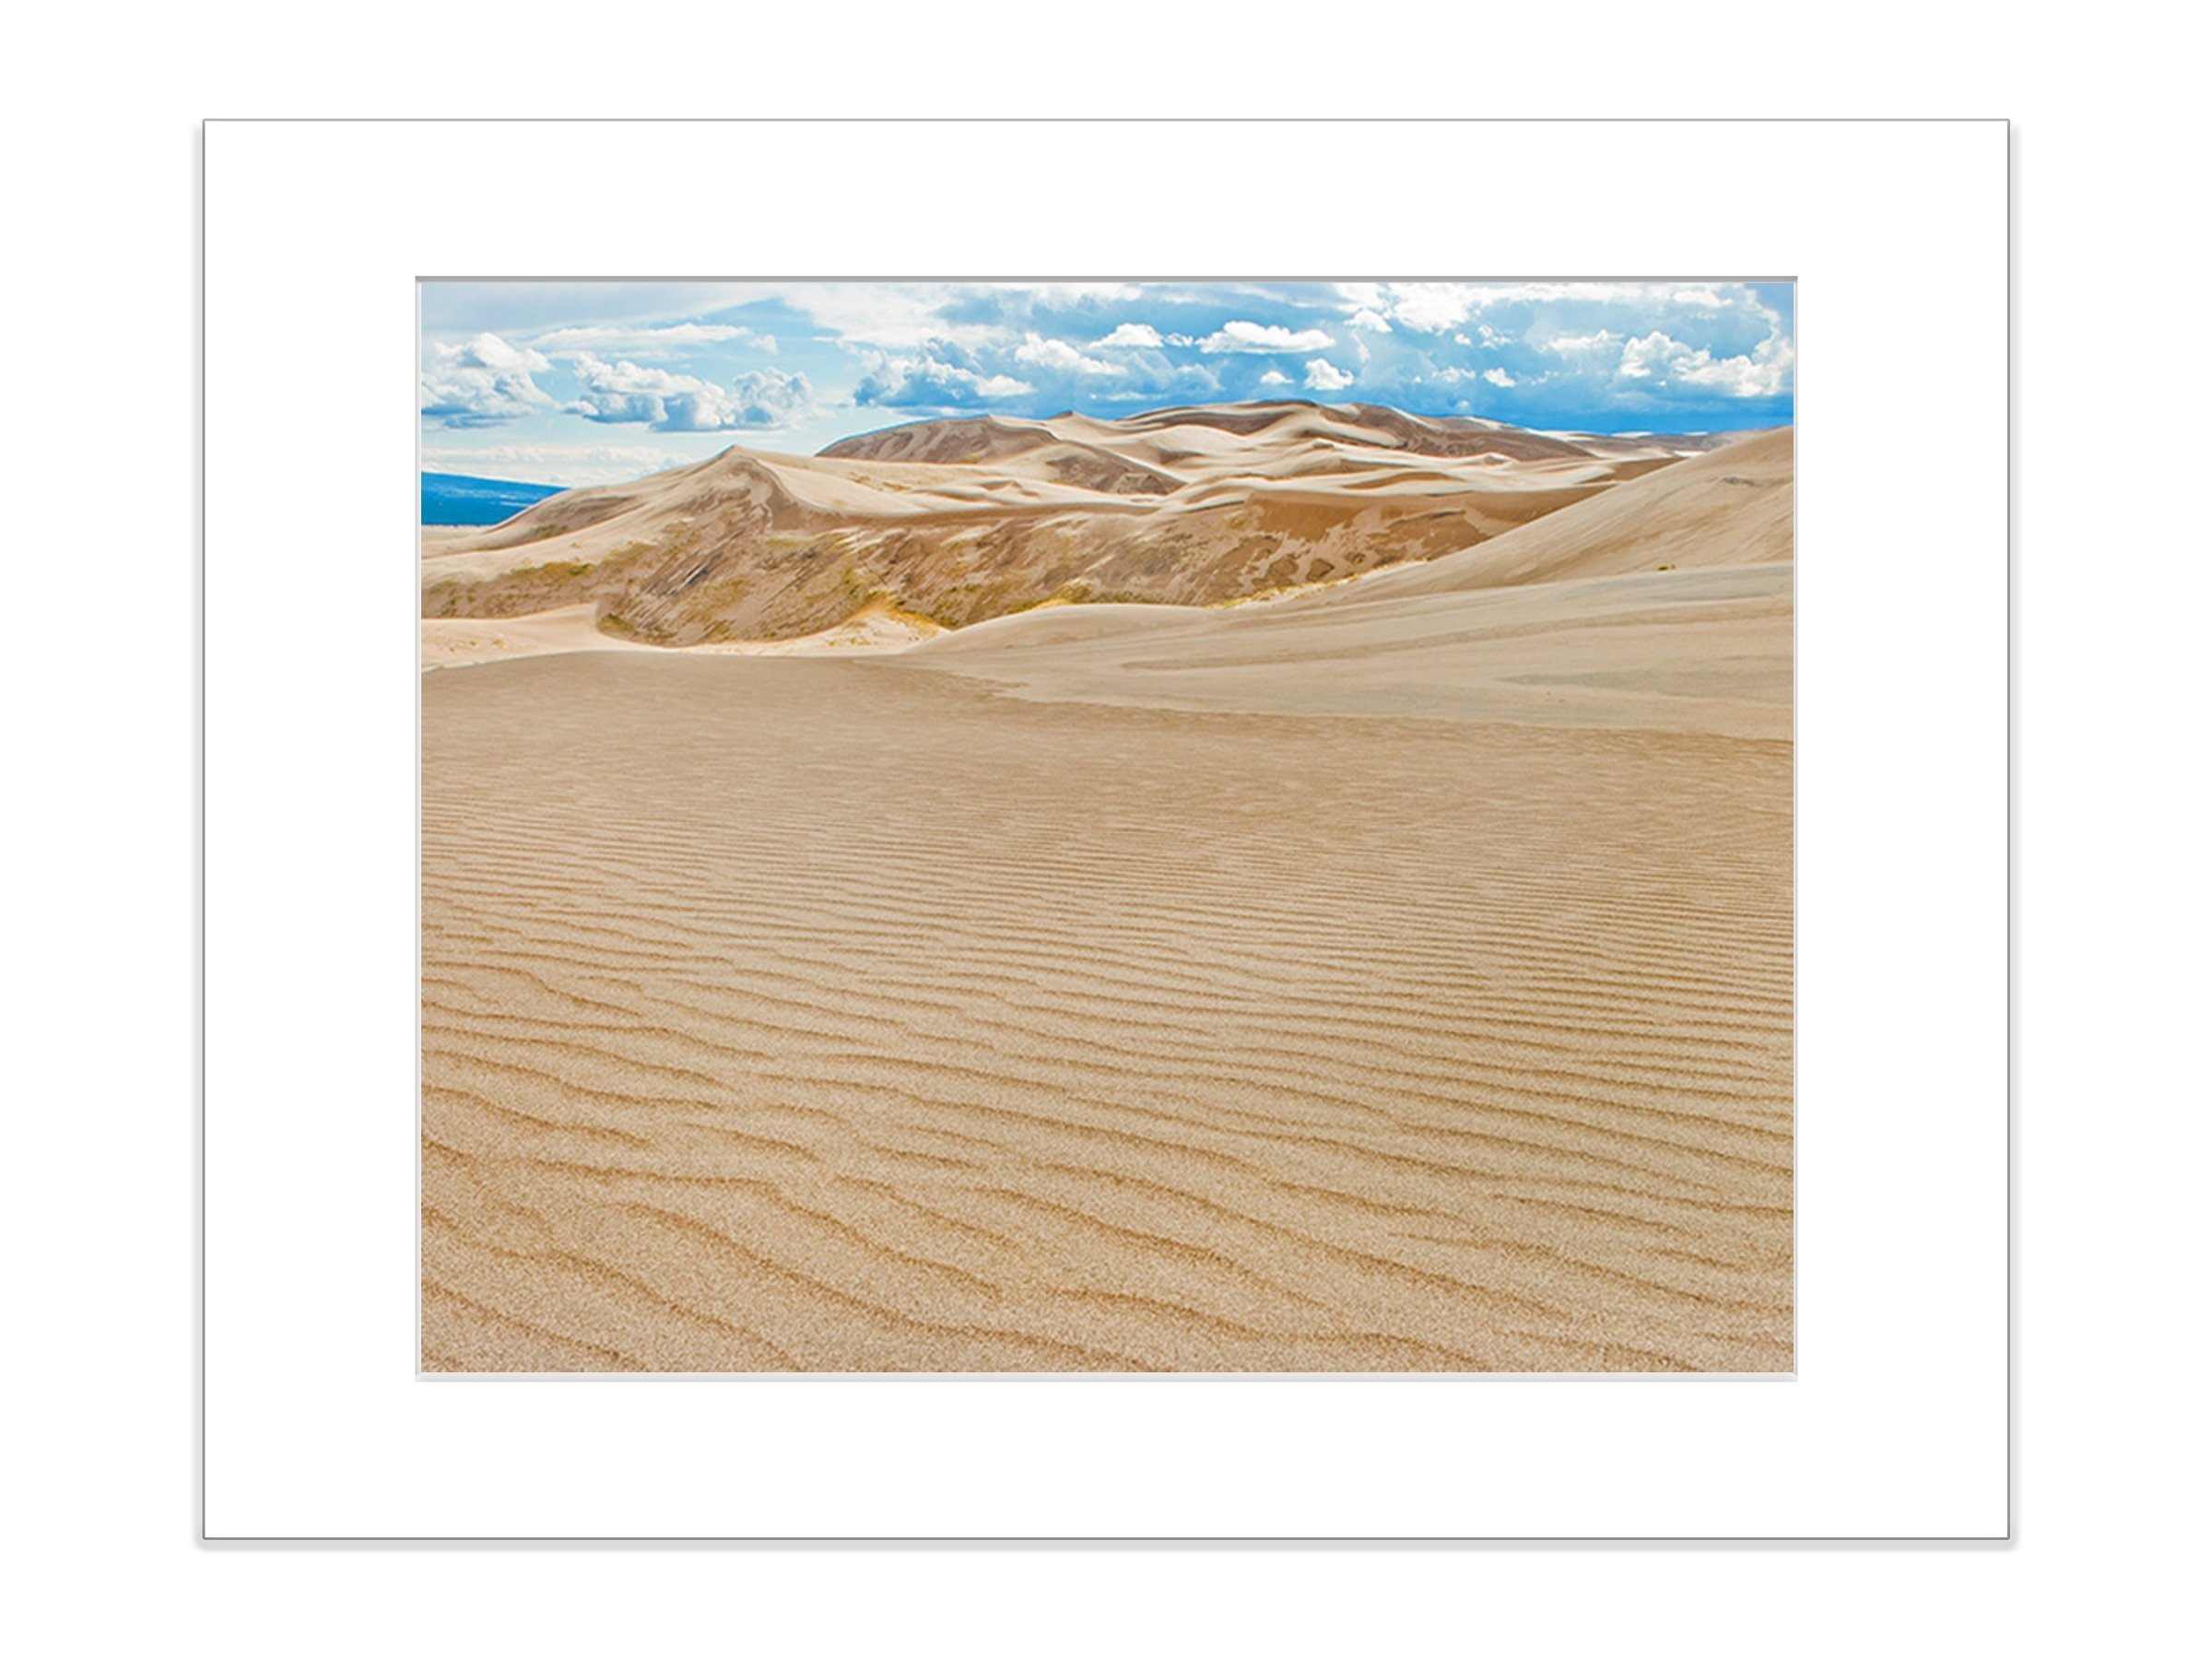 Southwestern Desert Abstract Sand Dunes Wall Decor 8x10 Matted Photo by Catch A Star Fine Art Photography